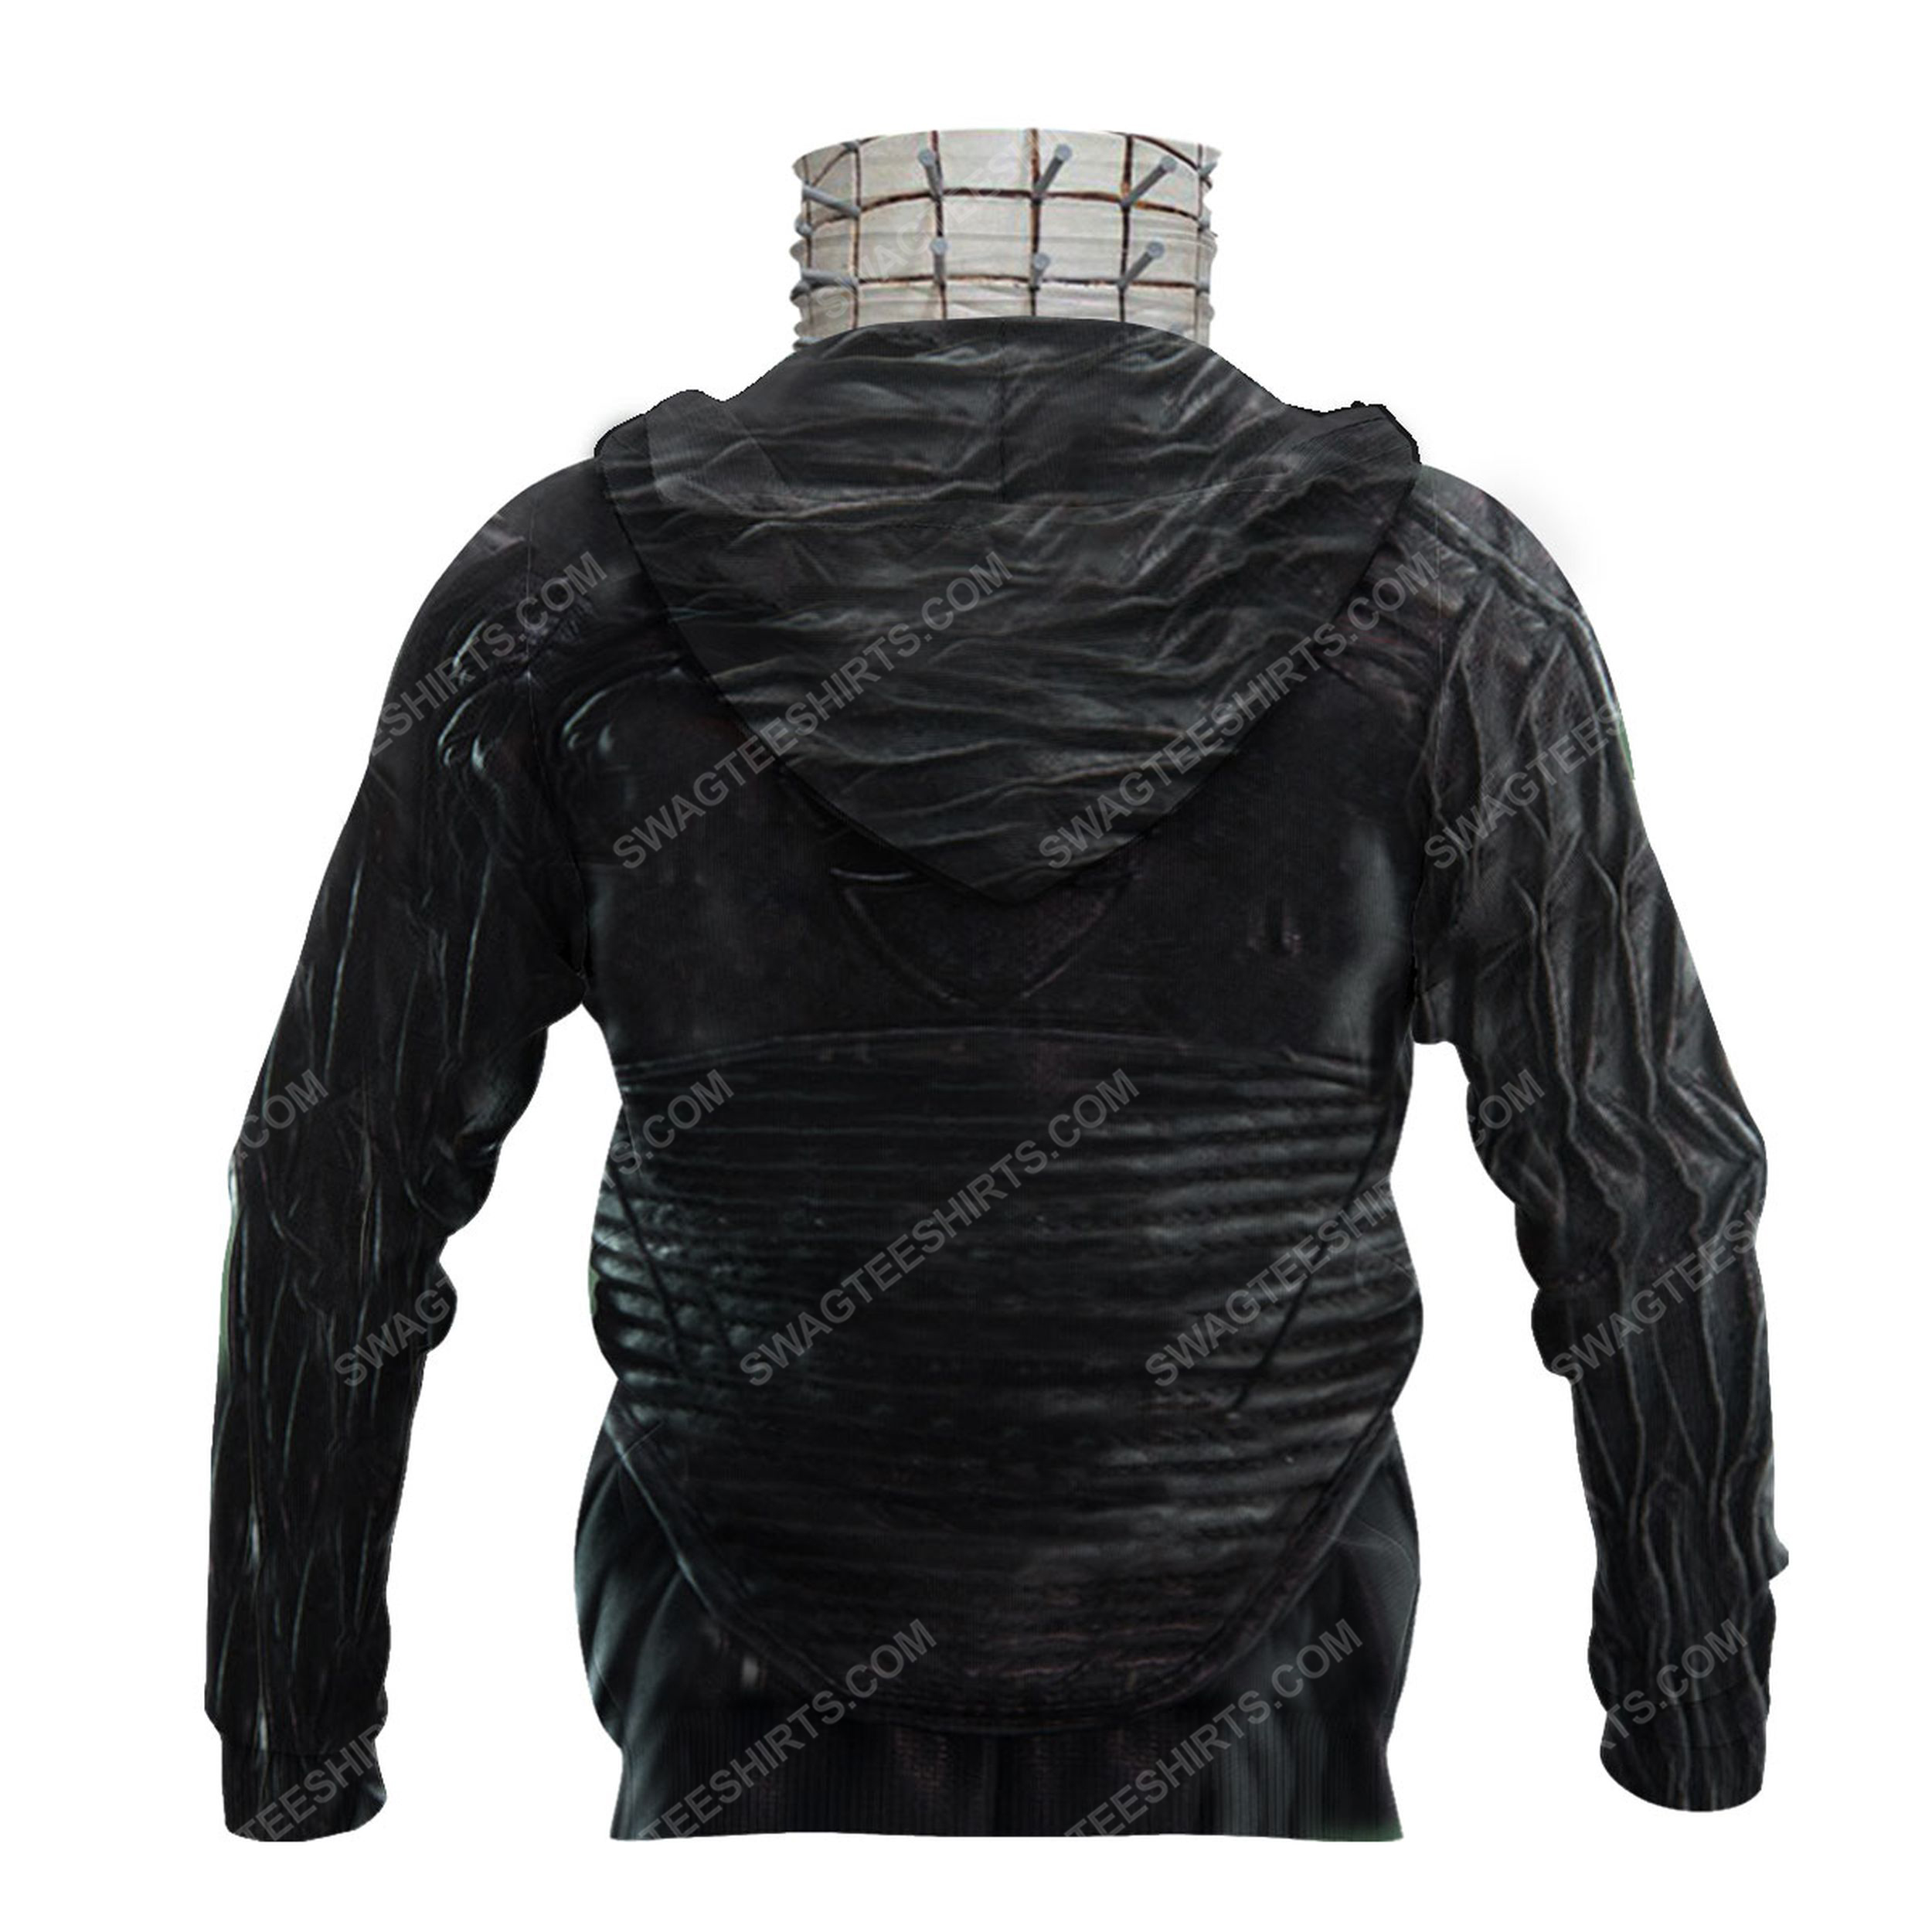 Pinhead the hell priest for halloween full print mask hoodie 4(1)